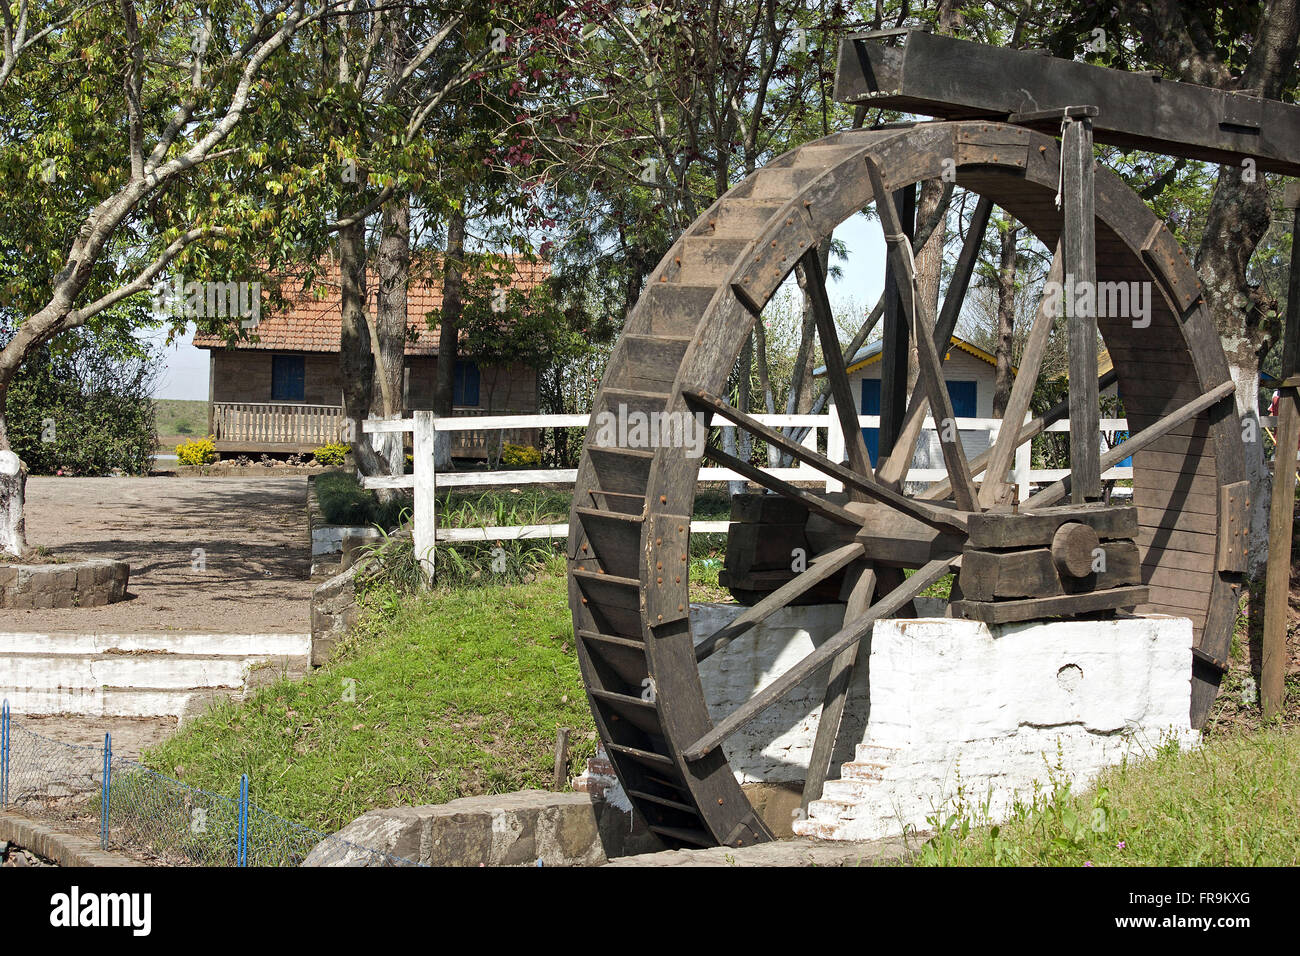 Water wheel used to power mills - Stock Image